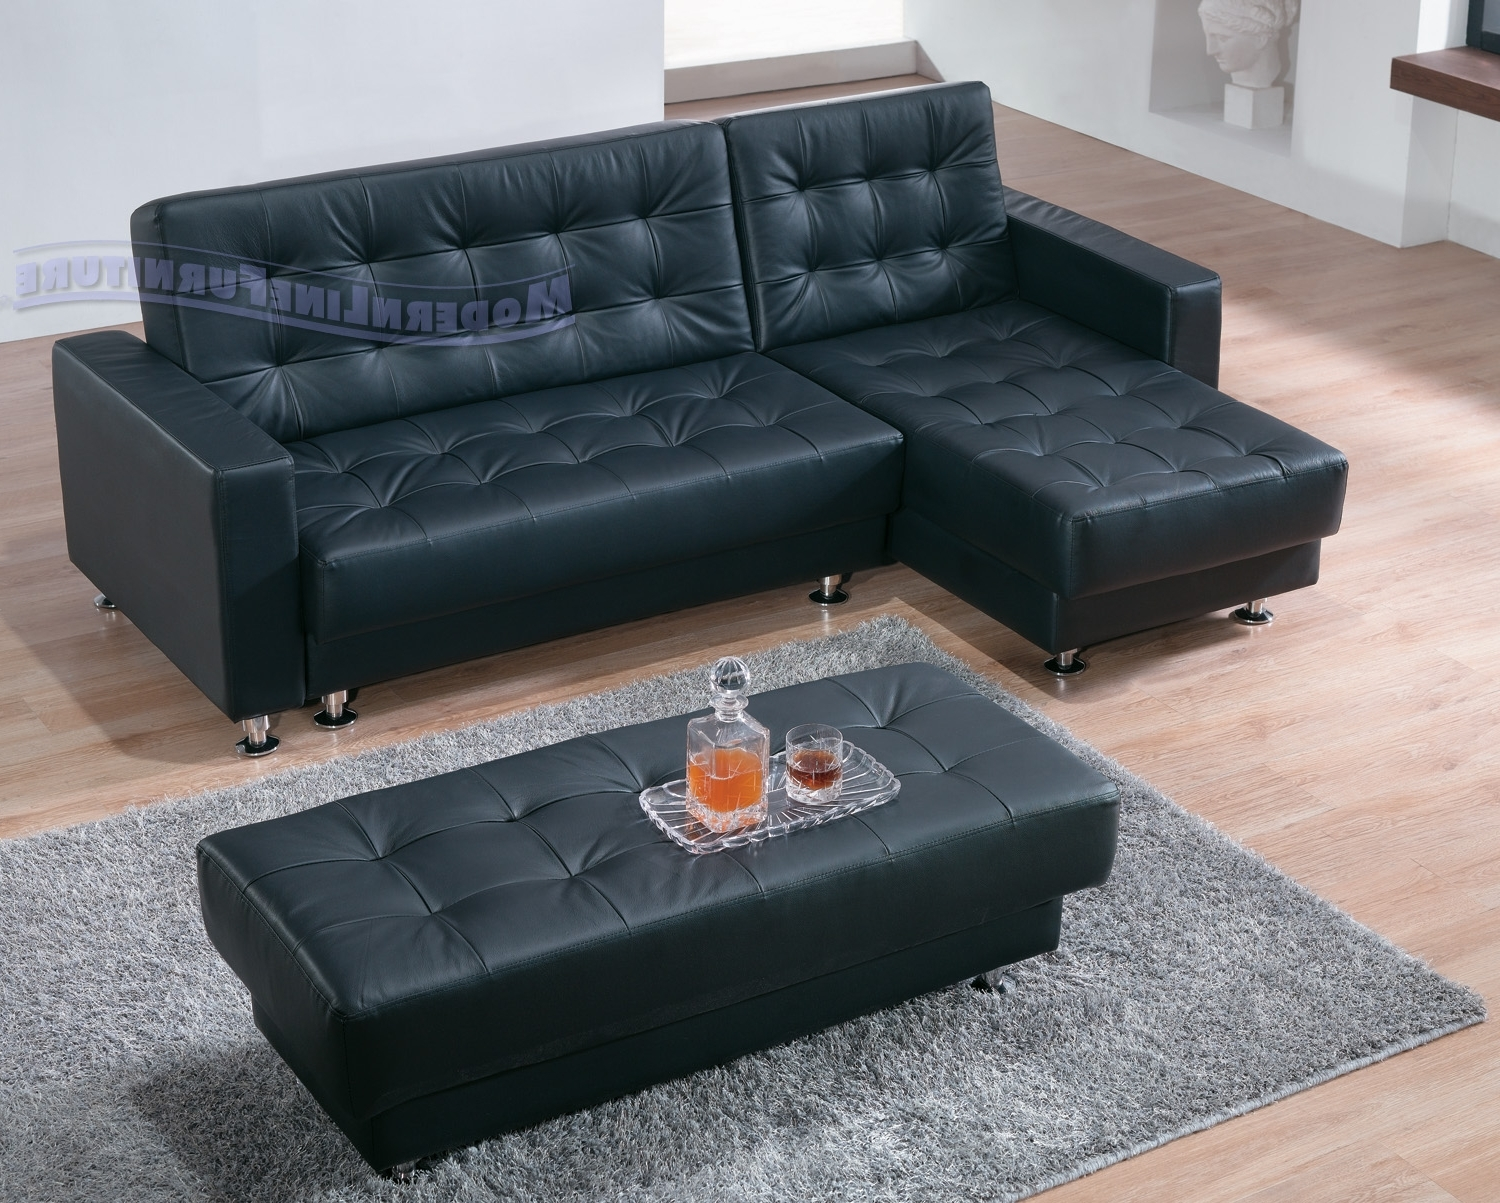 Most Current Sectional Sleeper Sofas With Ottoman With Furniture Sleeper Settee Couch Sleeper Bed Twin Sleeper Couch (View 6 of 15)